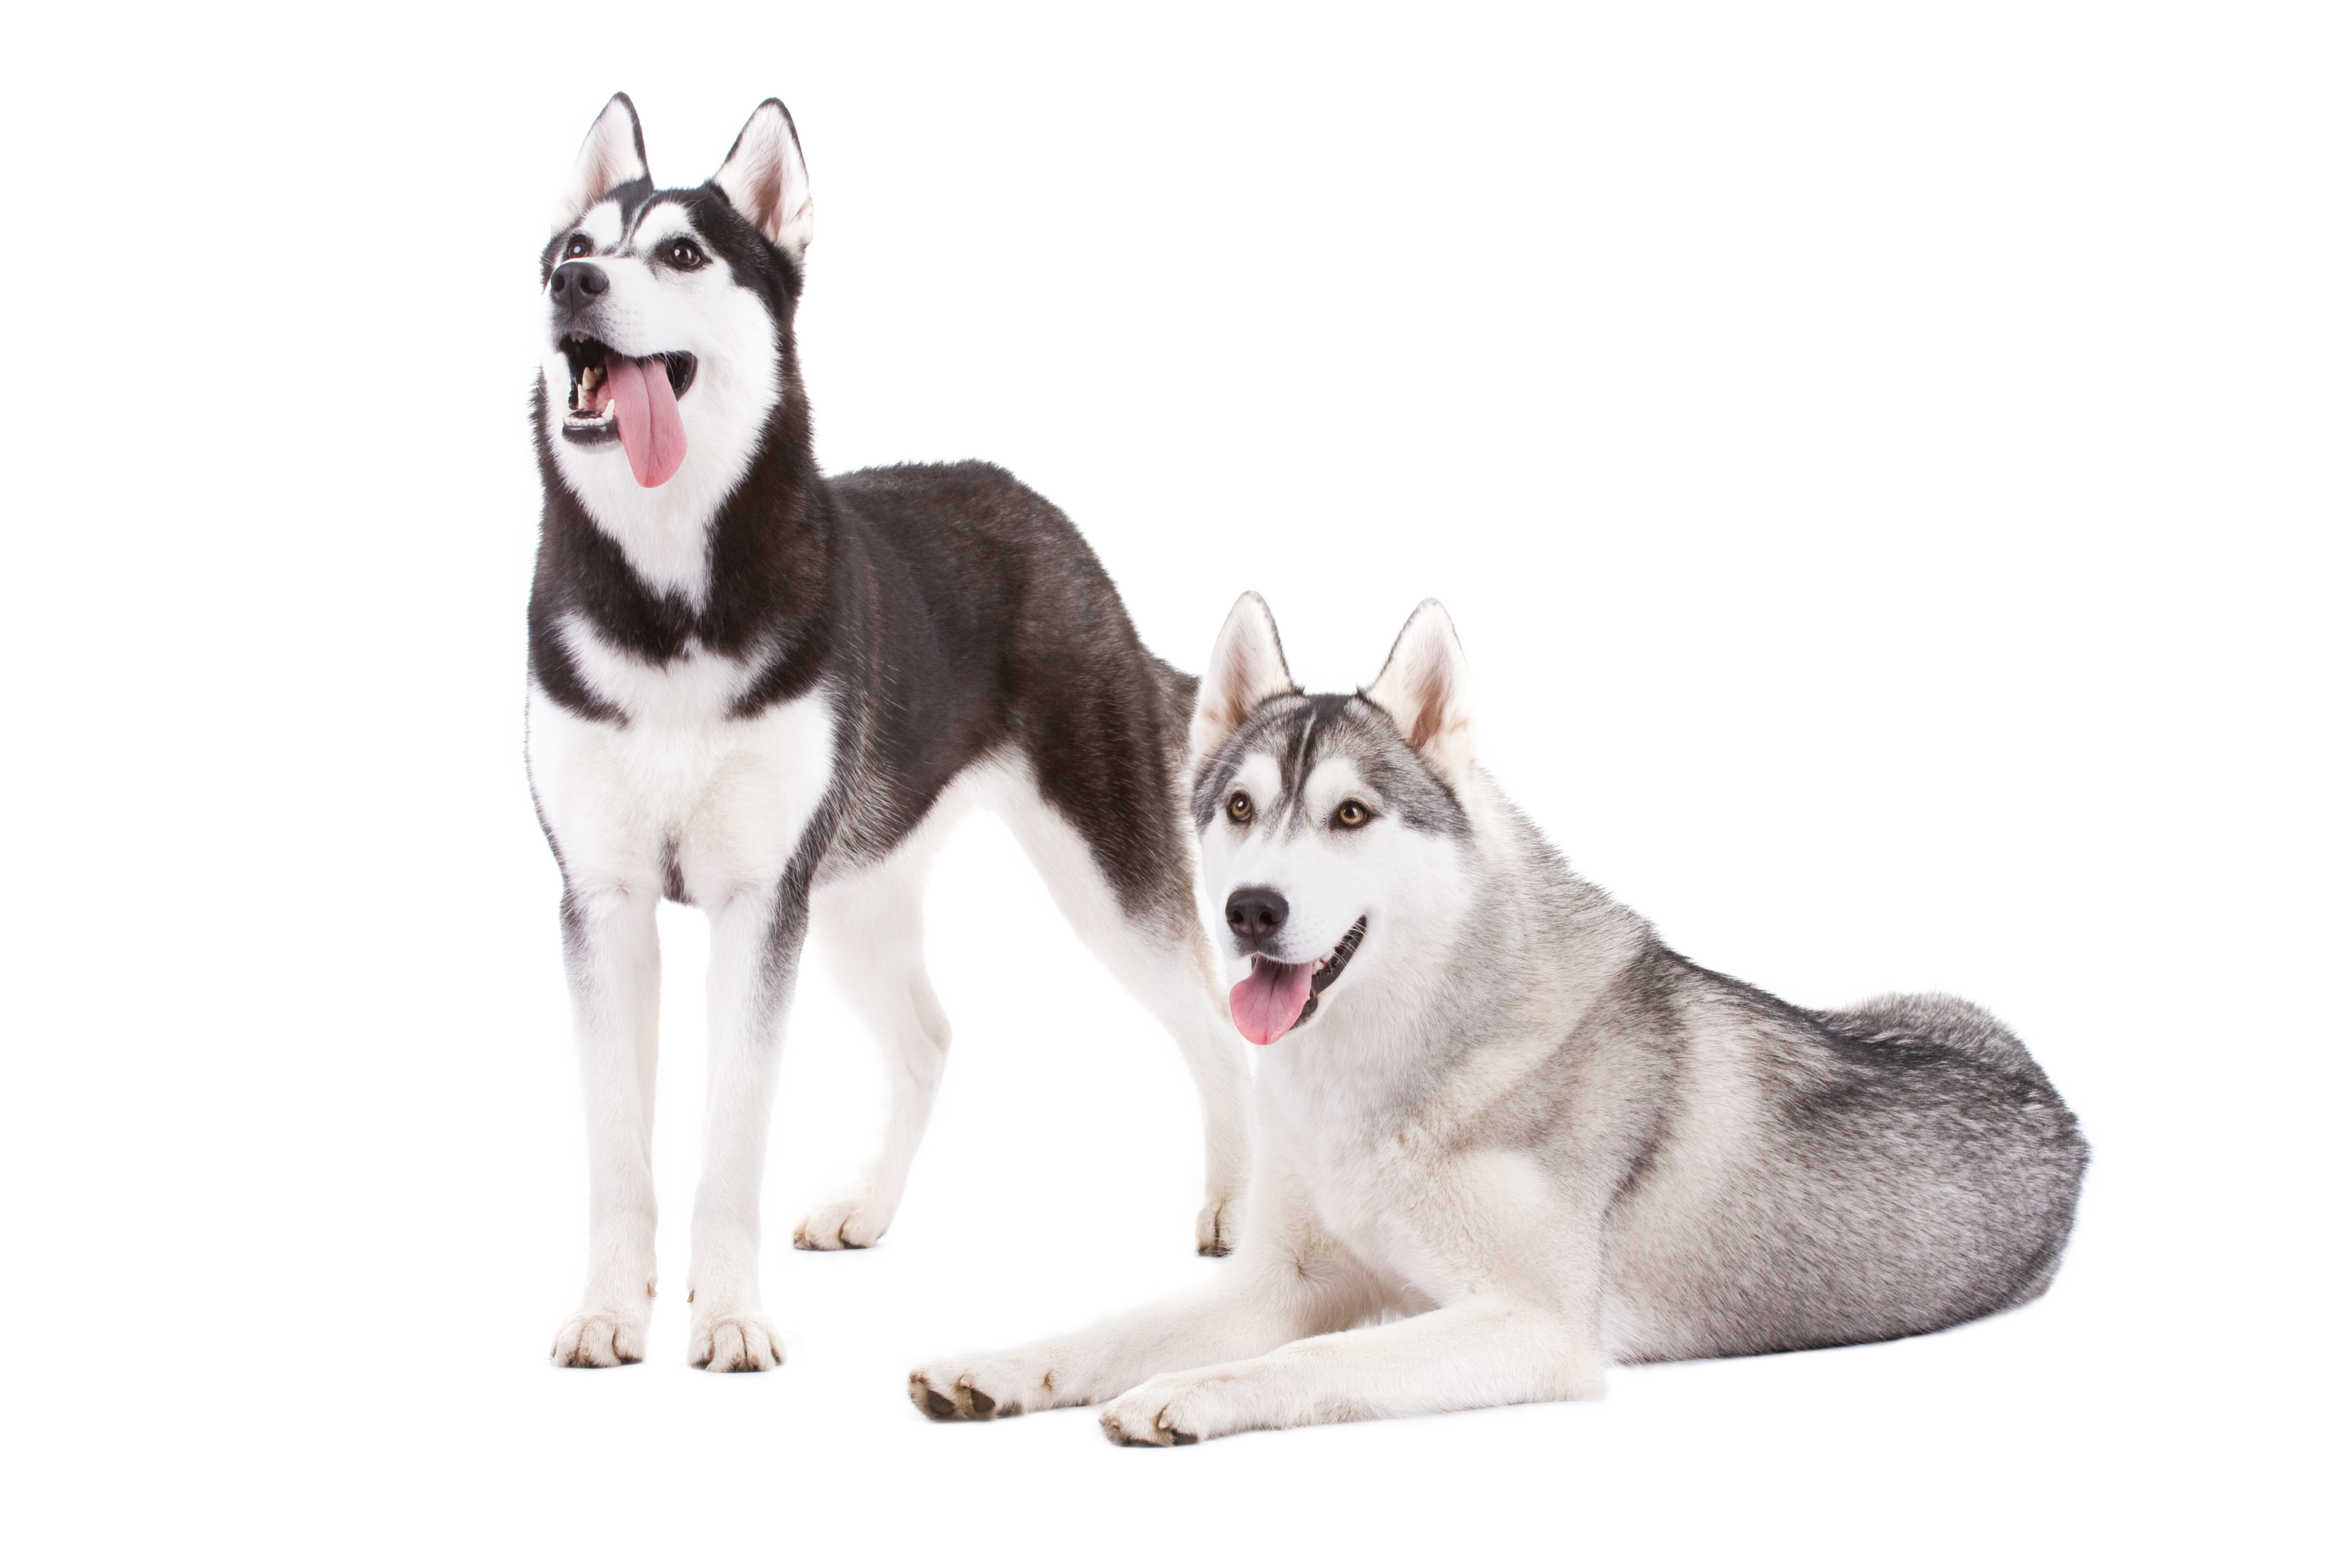 Two Siberian Huskies (one standing and one lying down) in front of white background